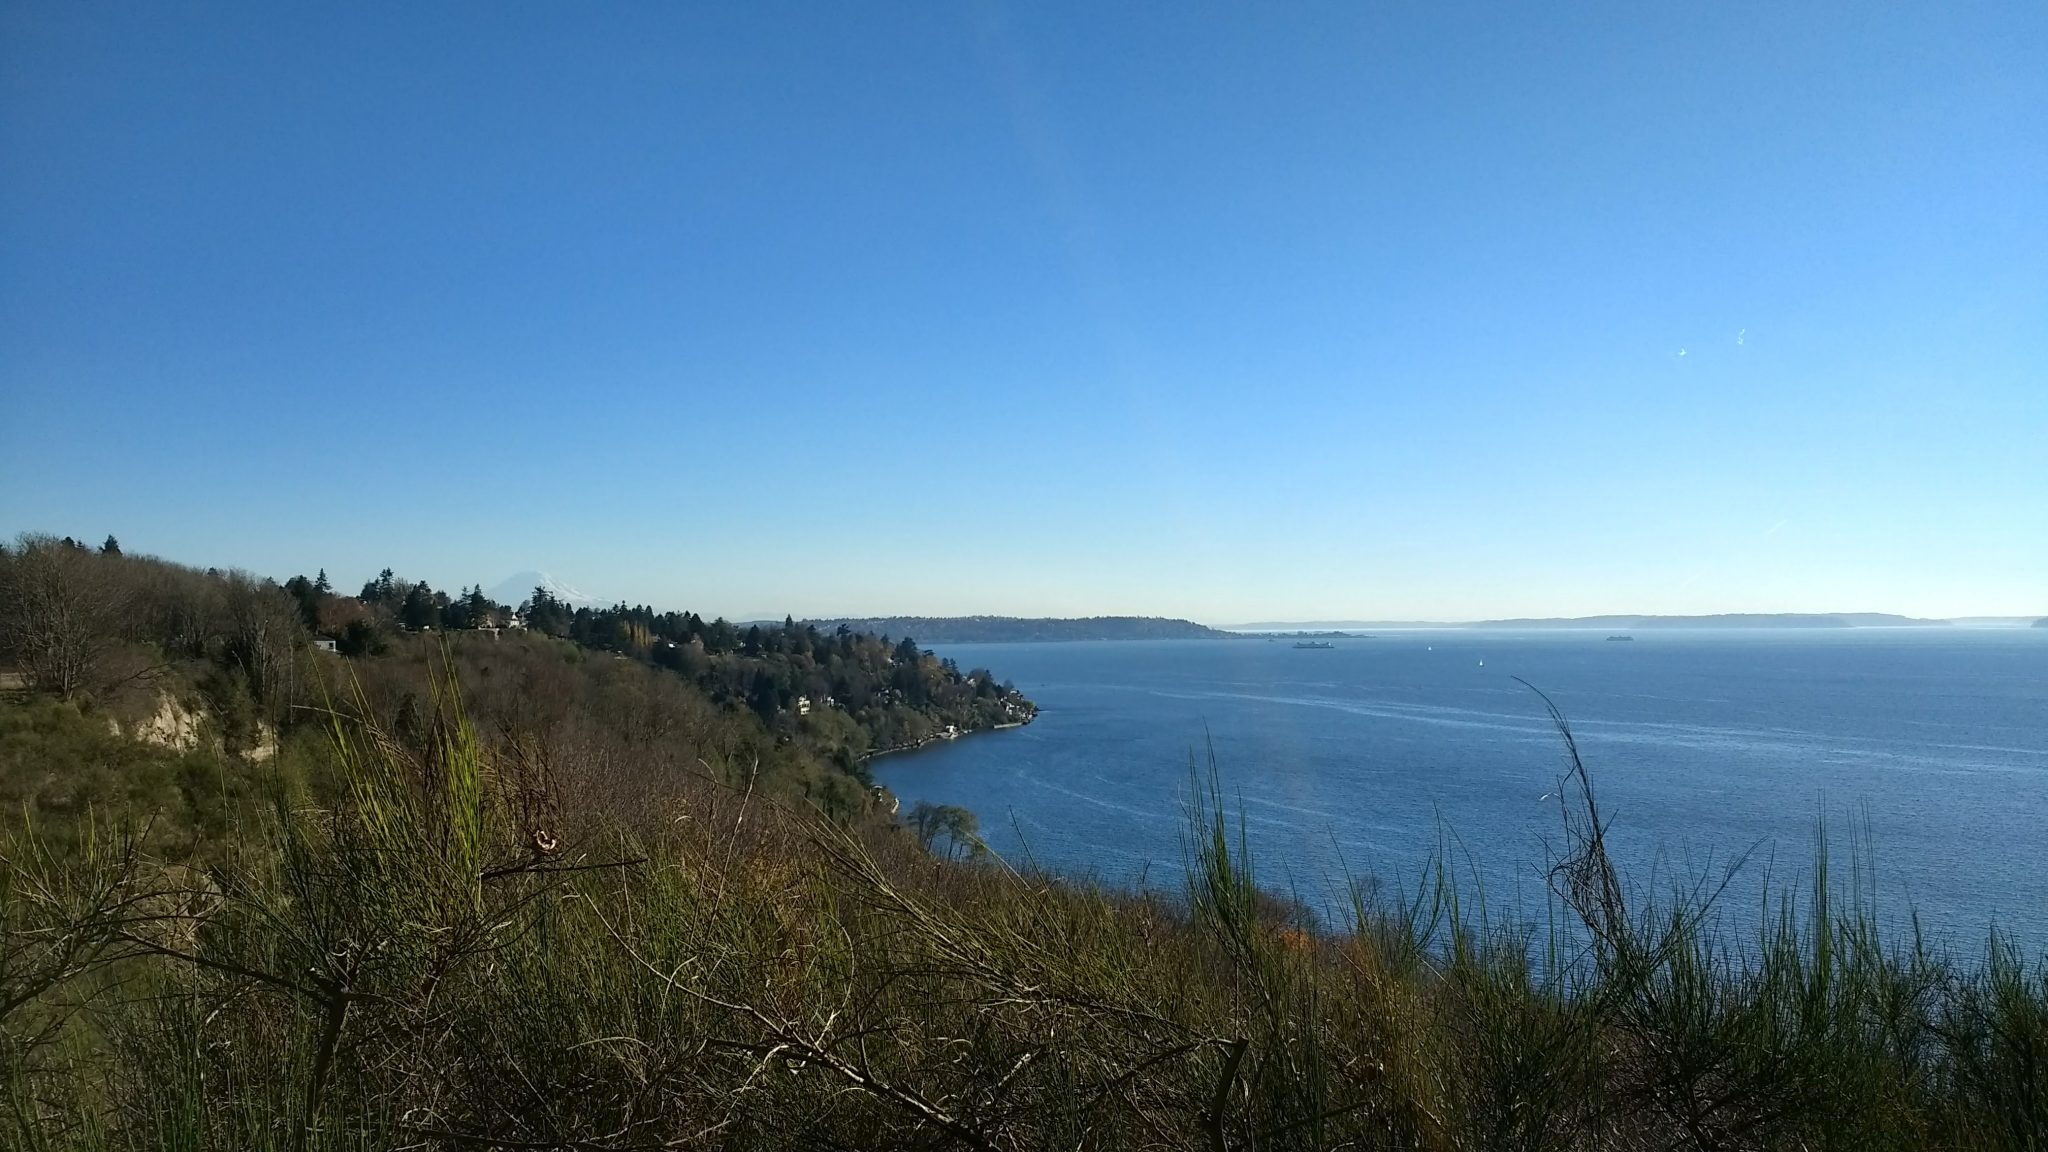 Blue water in the distance with boats on it. Distant forested hills are seen and in the foreground some low bushes